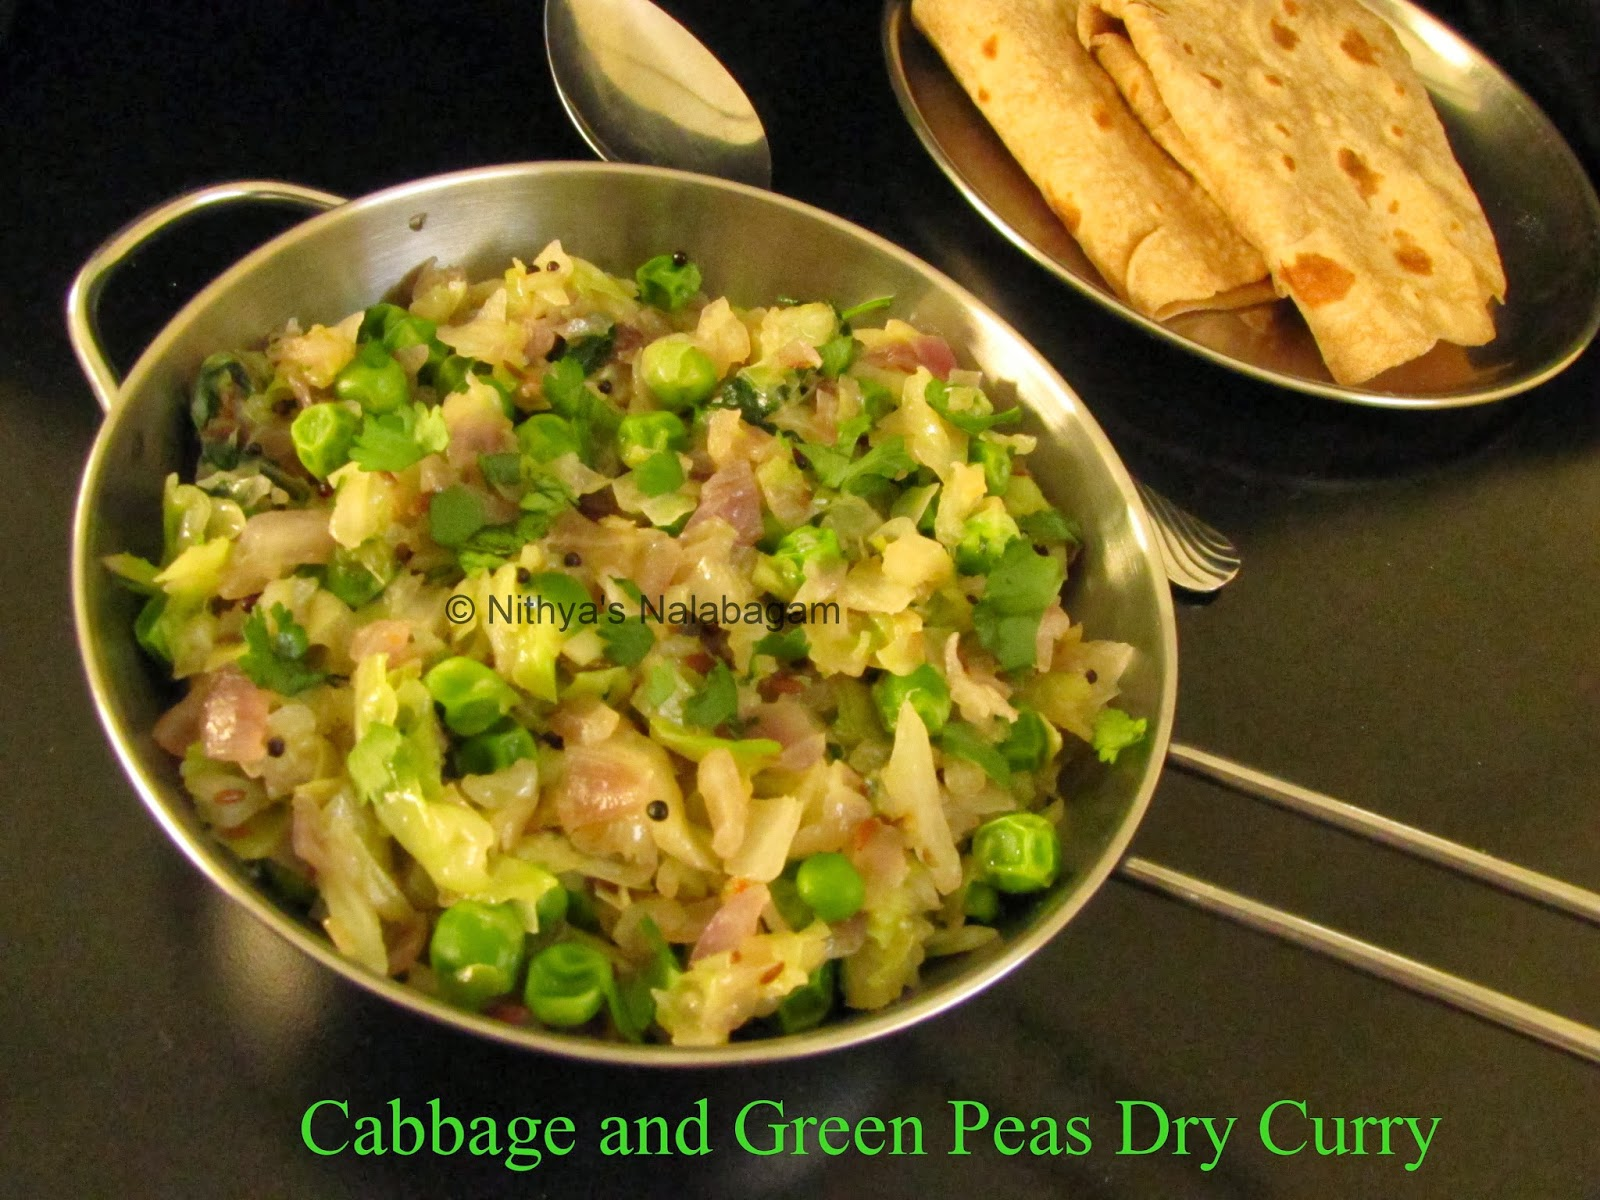 Cabbage and Green Peas Dry